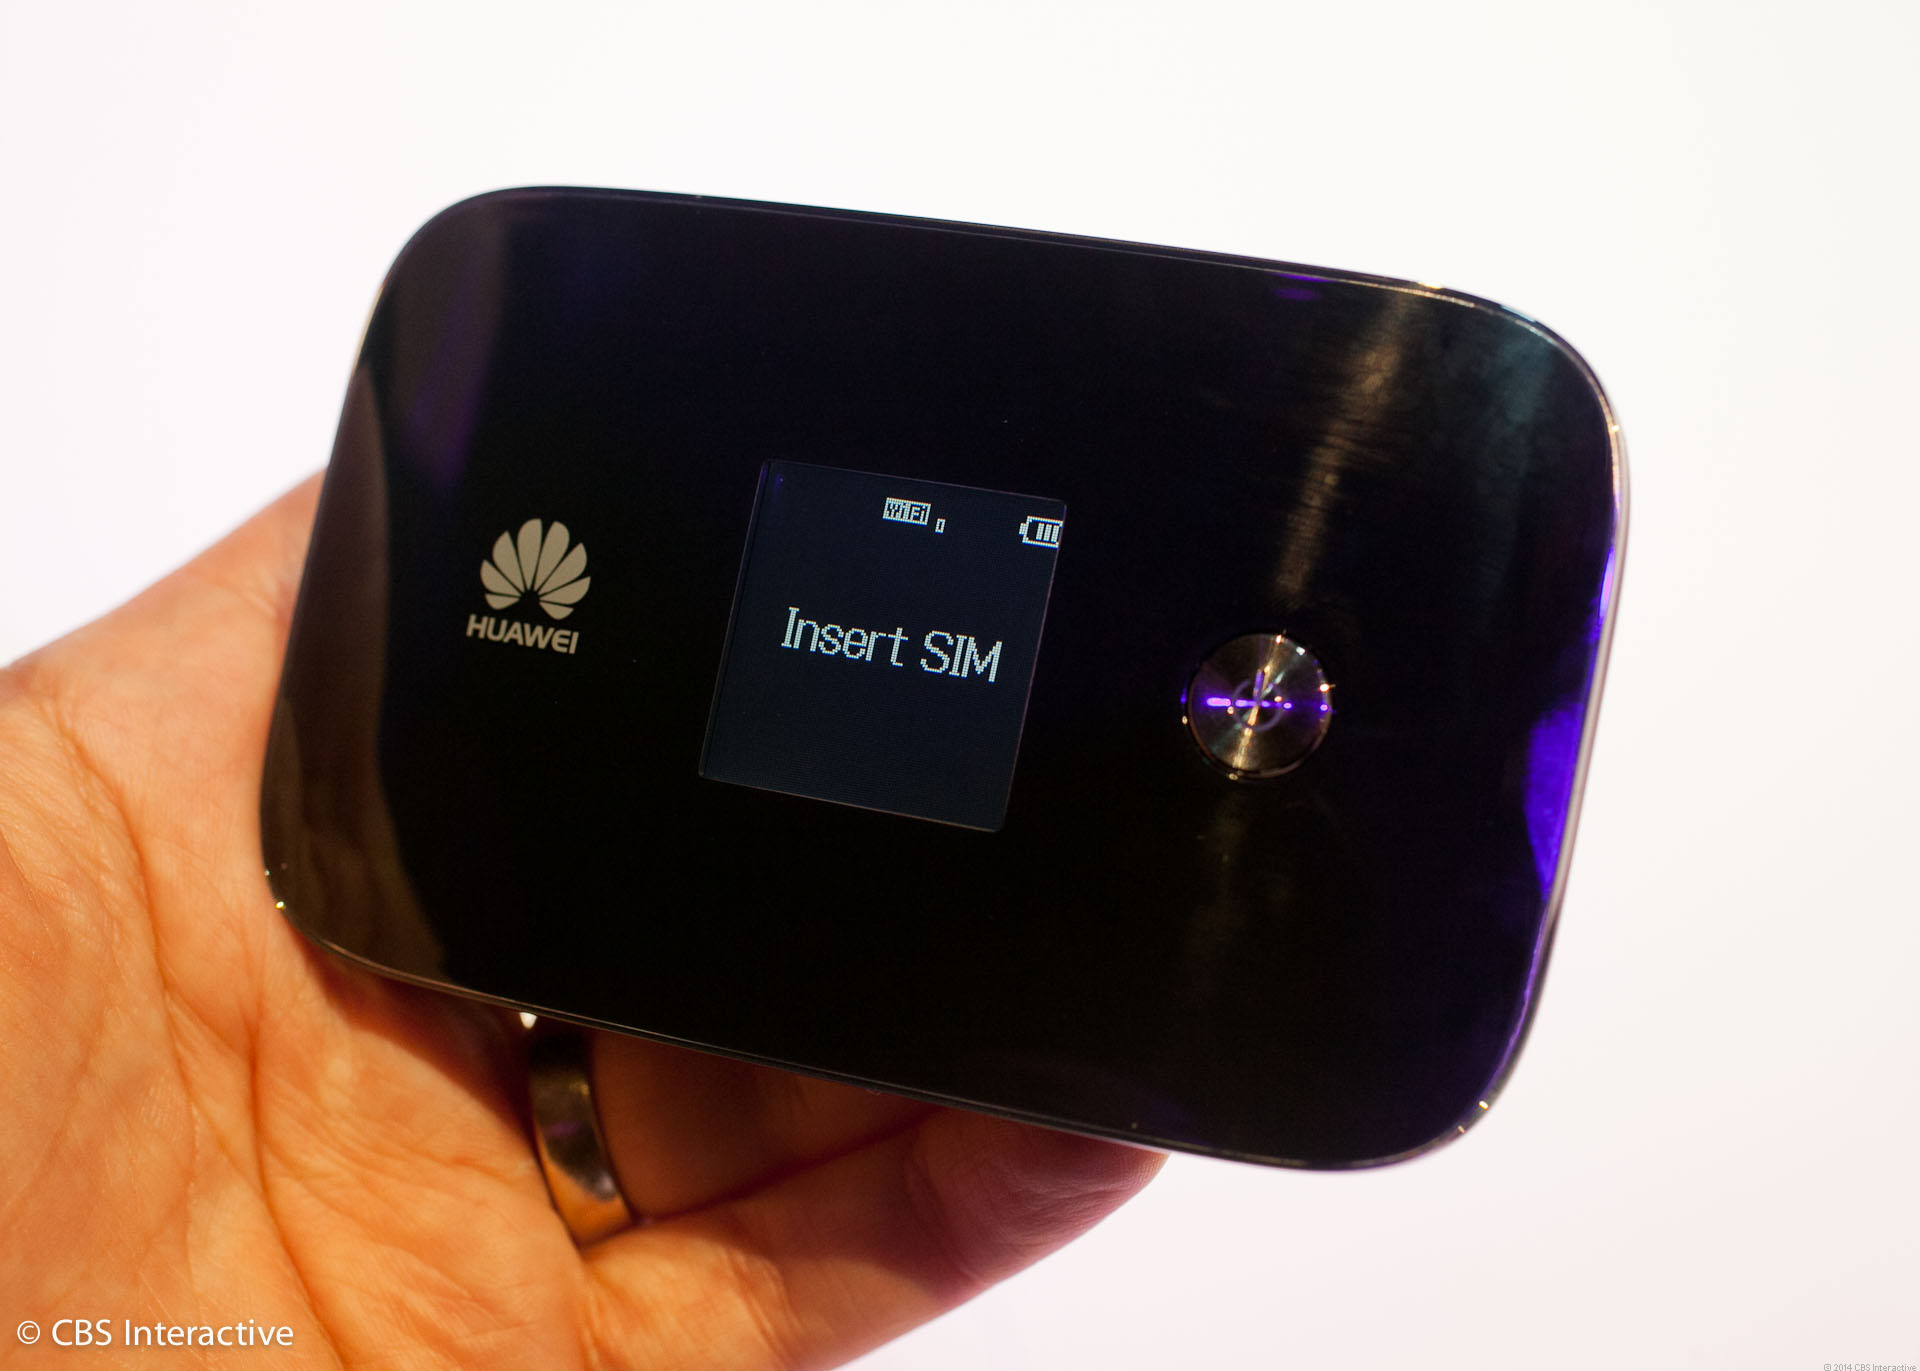 The Huawei E5786 is super compact considering what it has to offer.